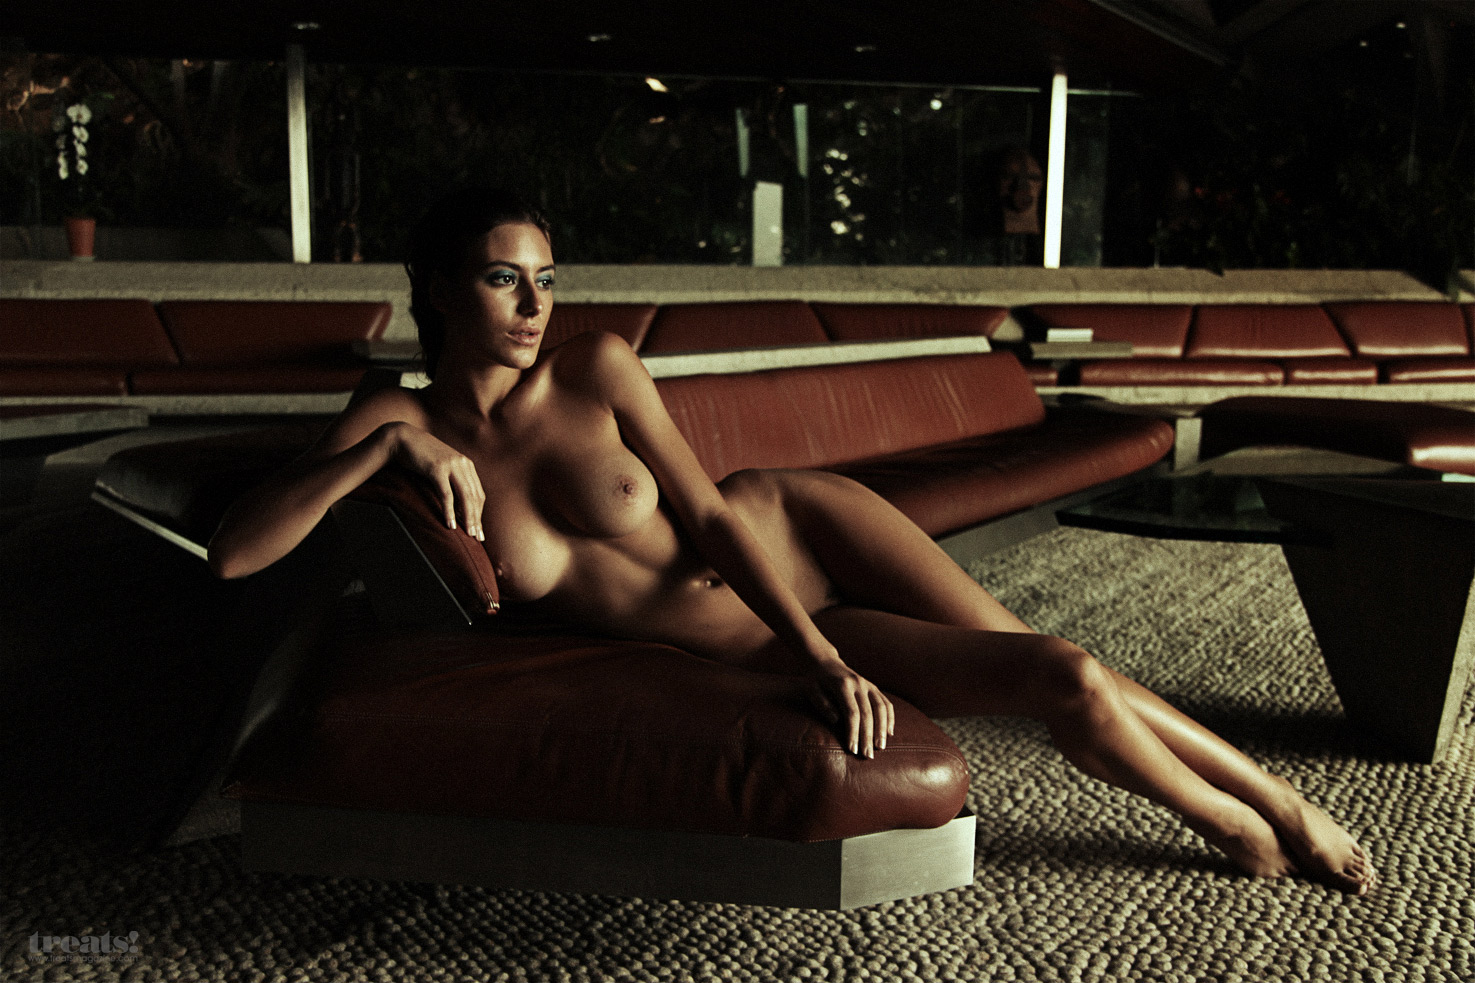 treats-magazine-richard-bernardin-Alejandra-20